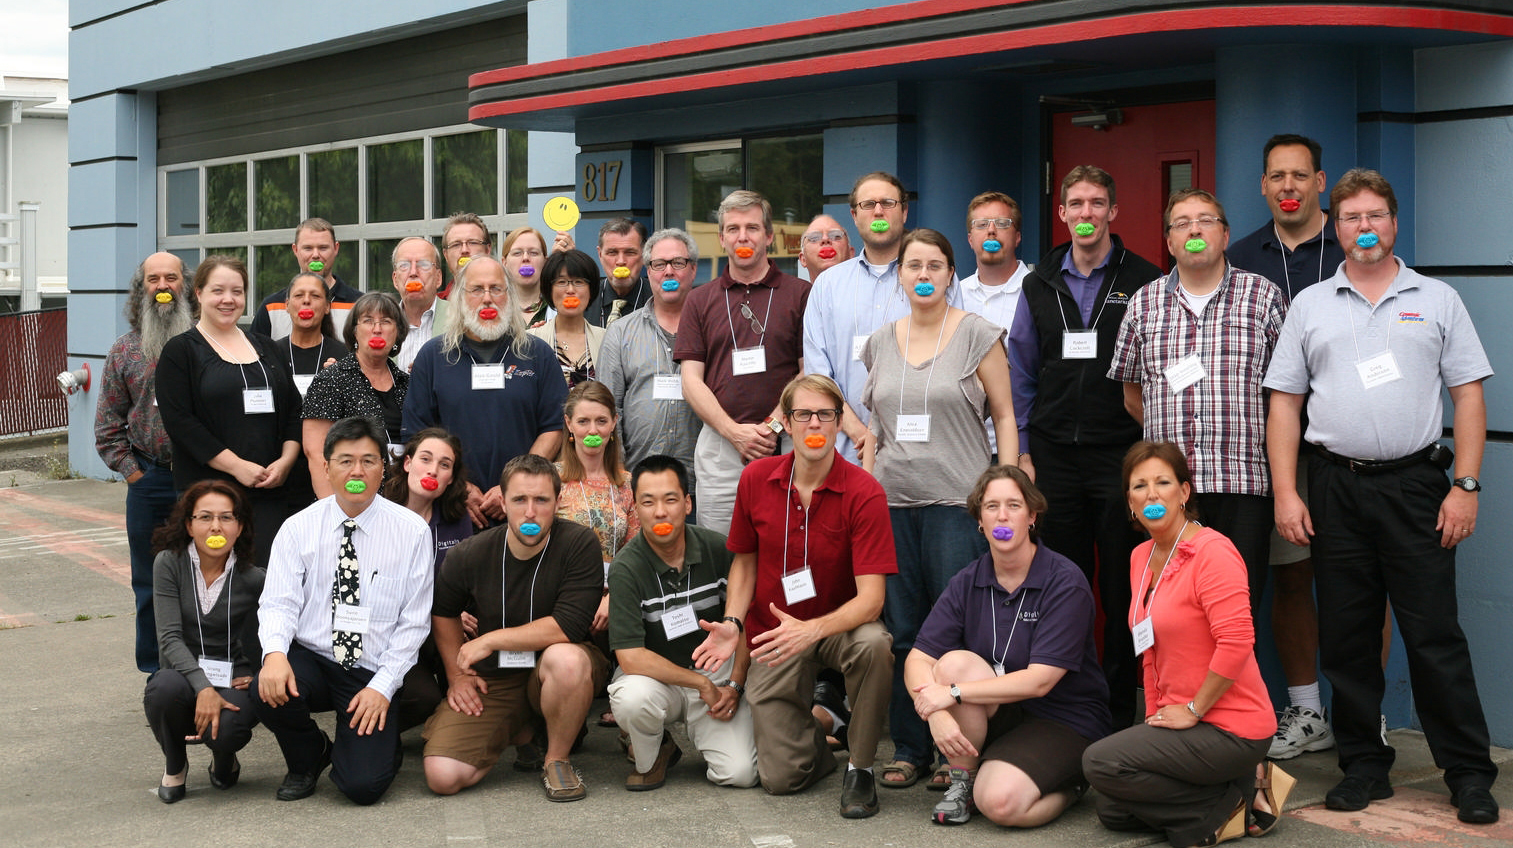 LIPS 2011 Attendees